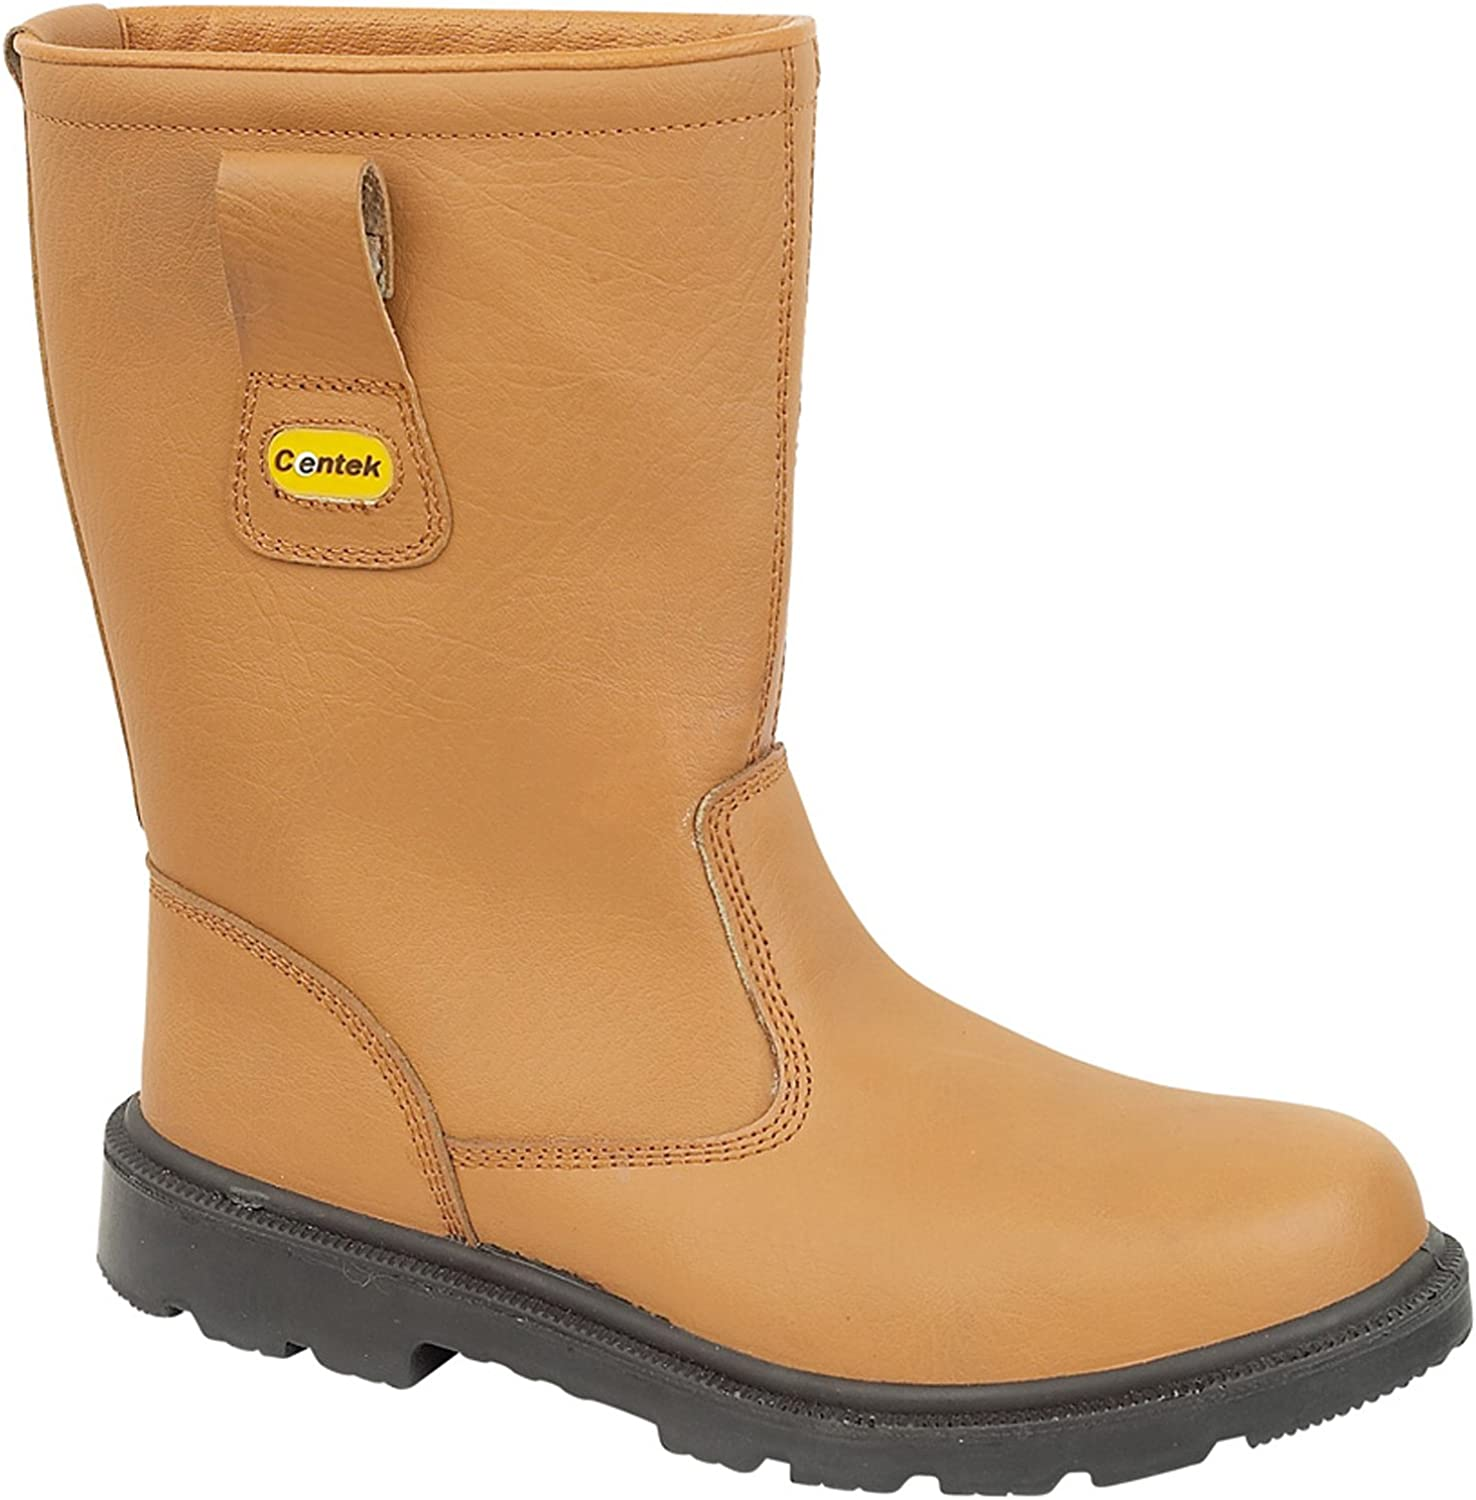 Centek FS241 Safety Rigger Boot   Womens Boots   Riggers Safety